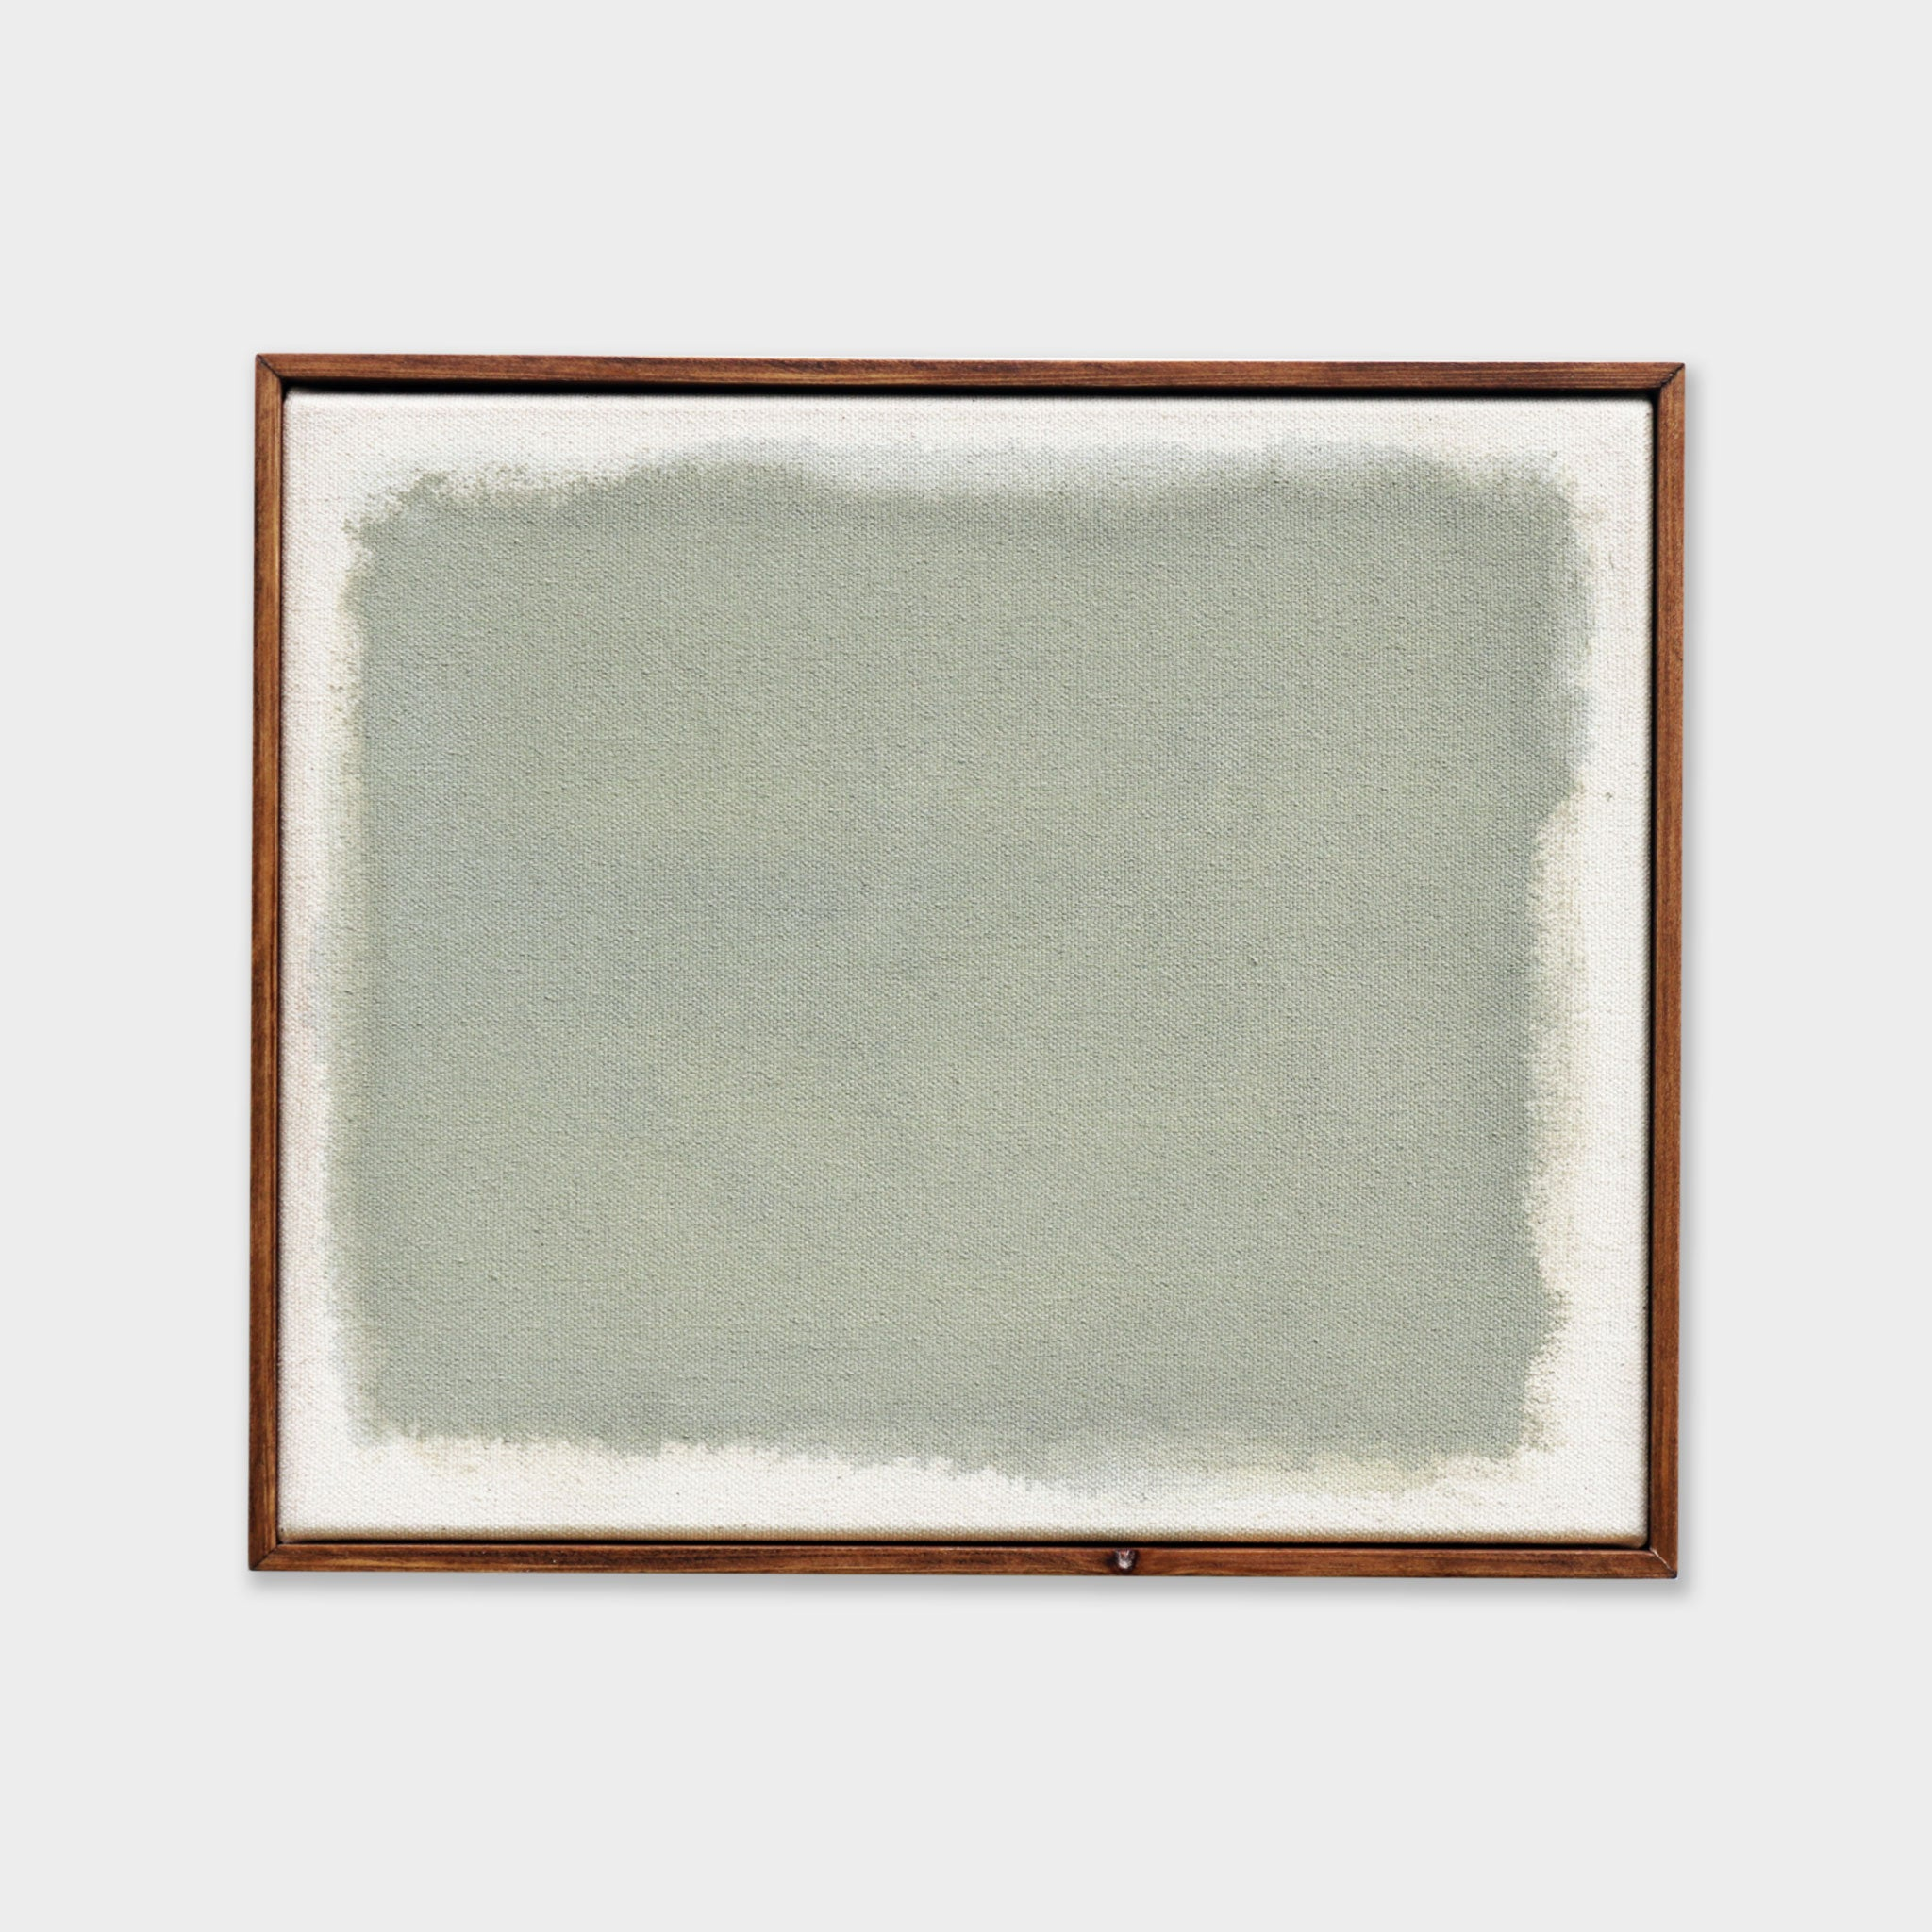 Quiet Green | David Hardy | Original Artwork | Partnership Editions